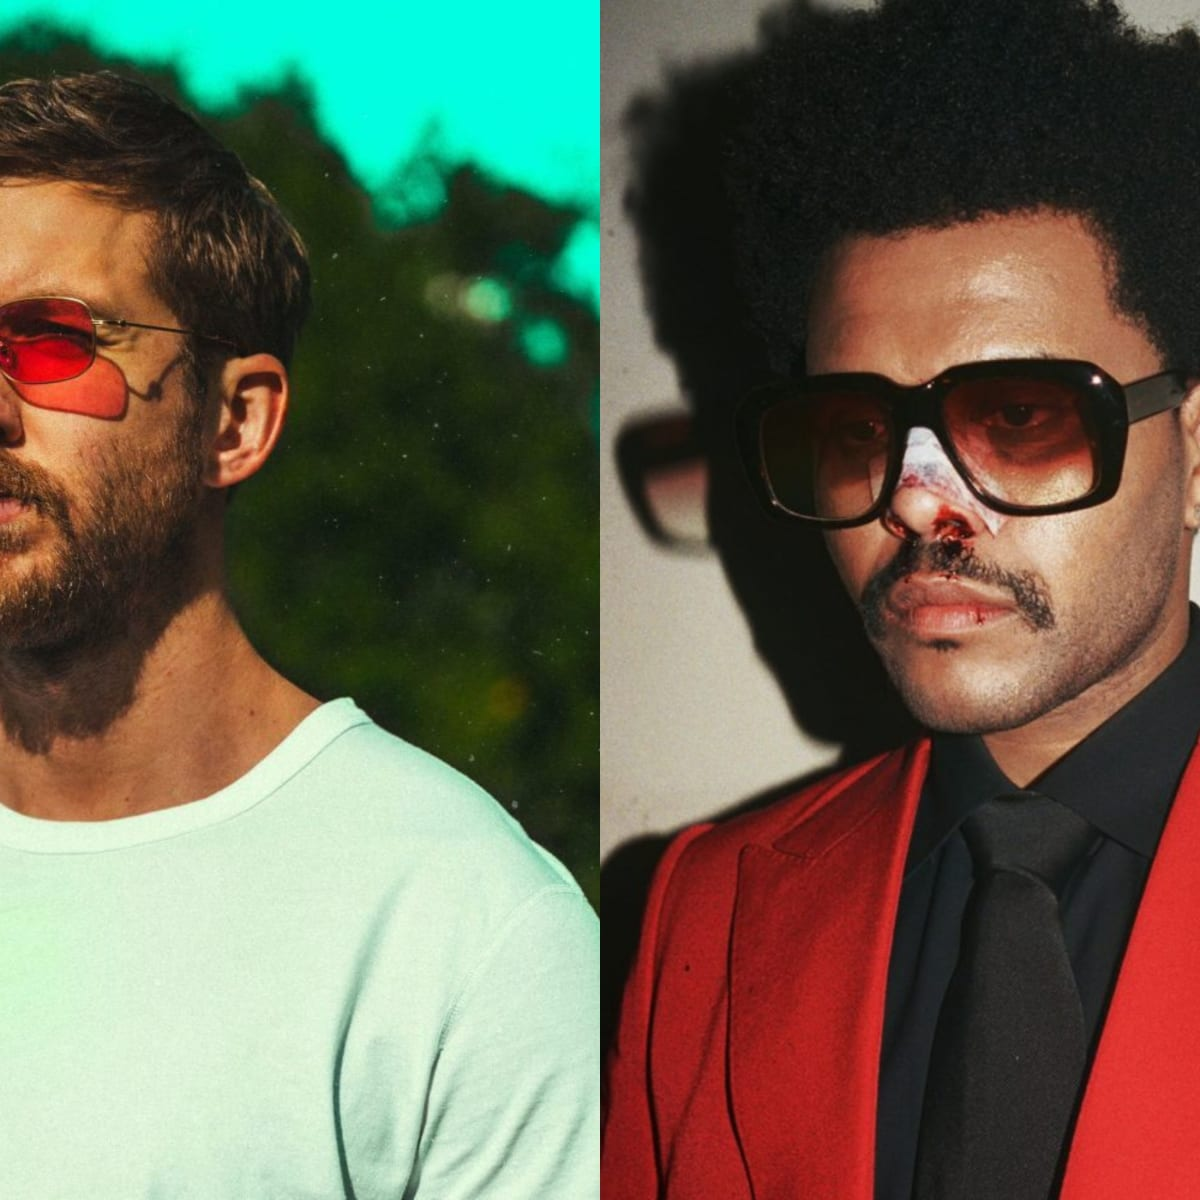 Calvin Harris And The Weeknd Drop Interdimensional Video For Over Now Edm Com The Latest Electronic Dance Music News Reviews Artists